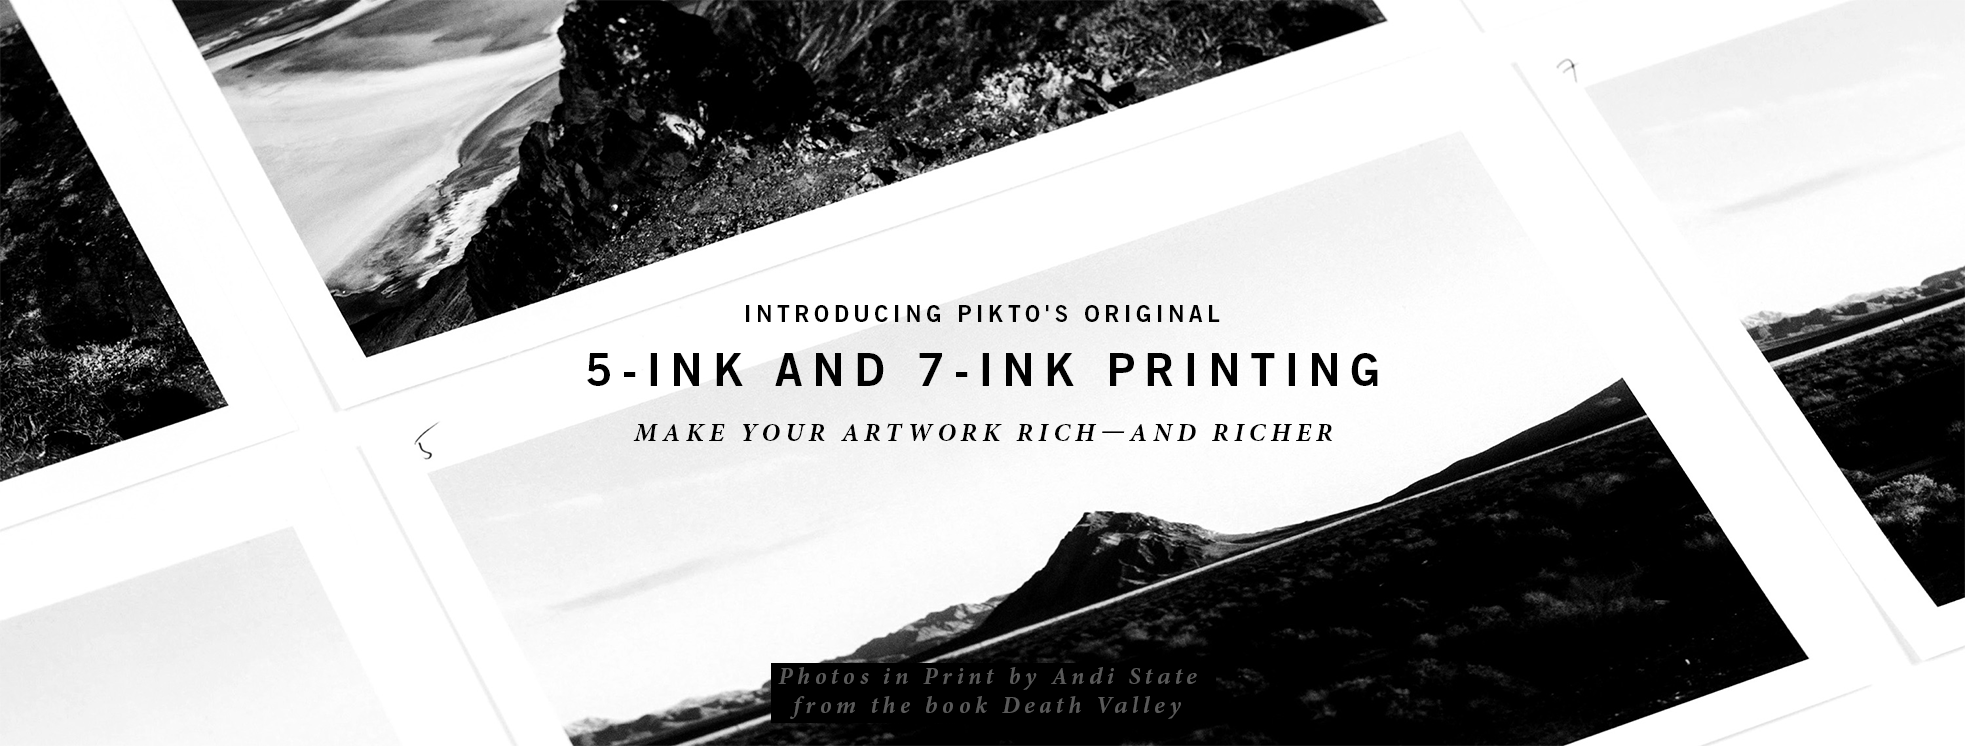 PIKTO'S ORIGINAL 5-INK AND 7-INK PRINTING MAKE YOUR ARTWORK RICH—AND RICHER